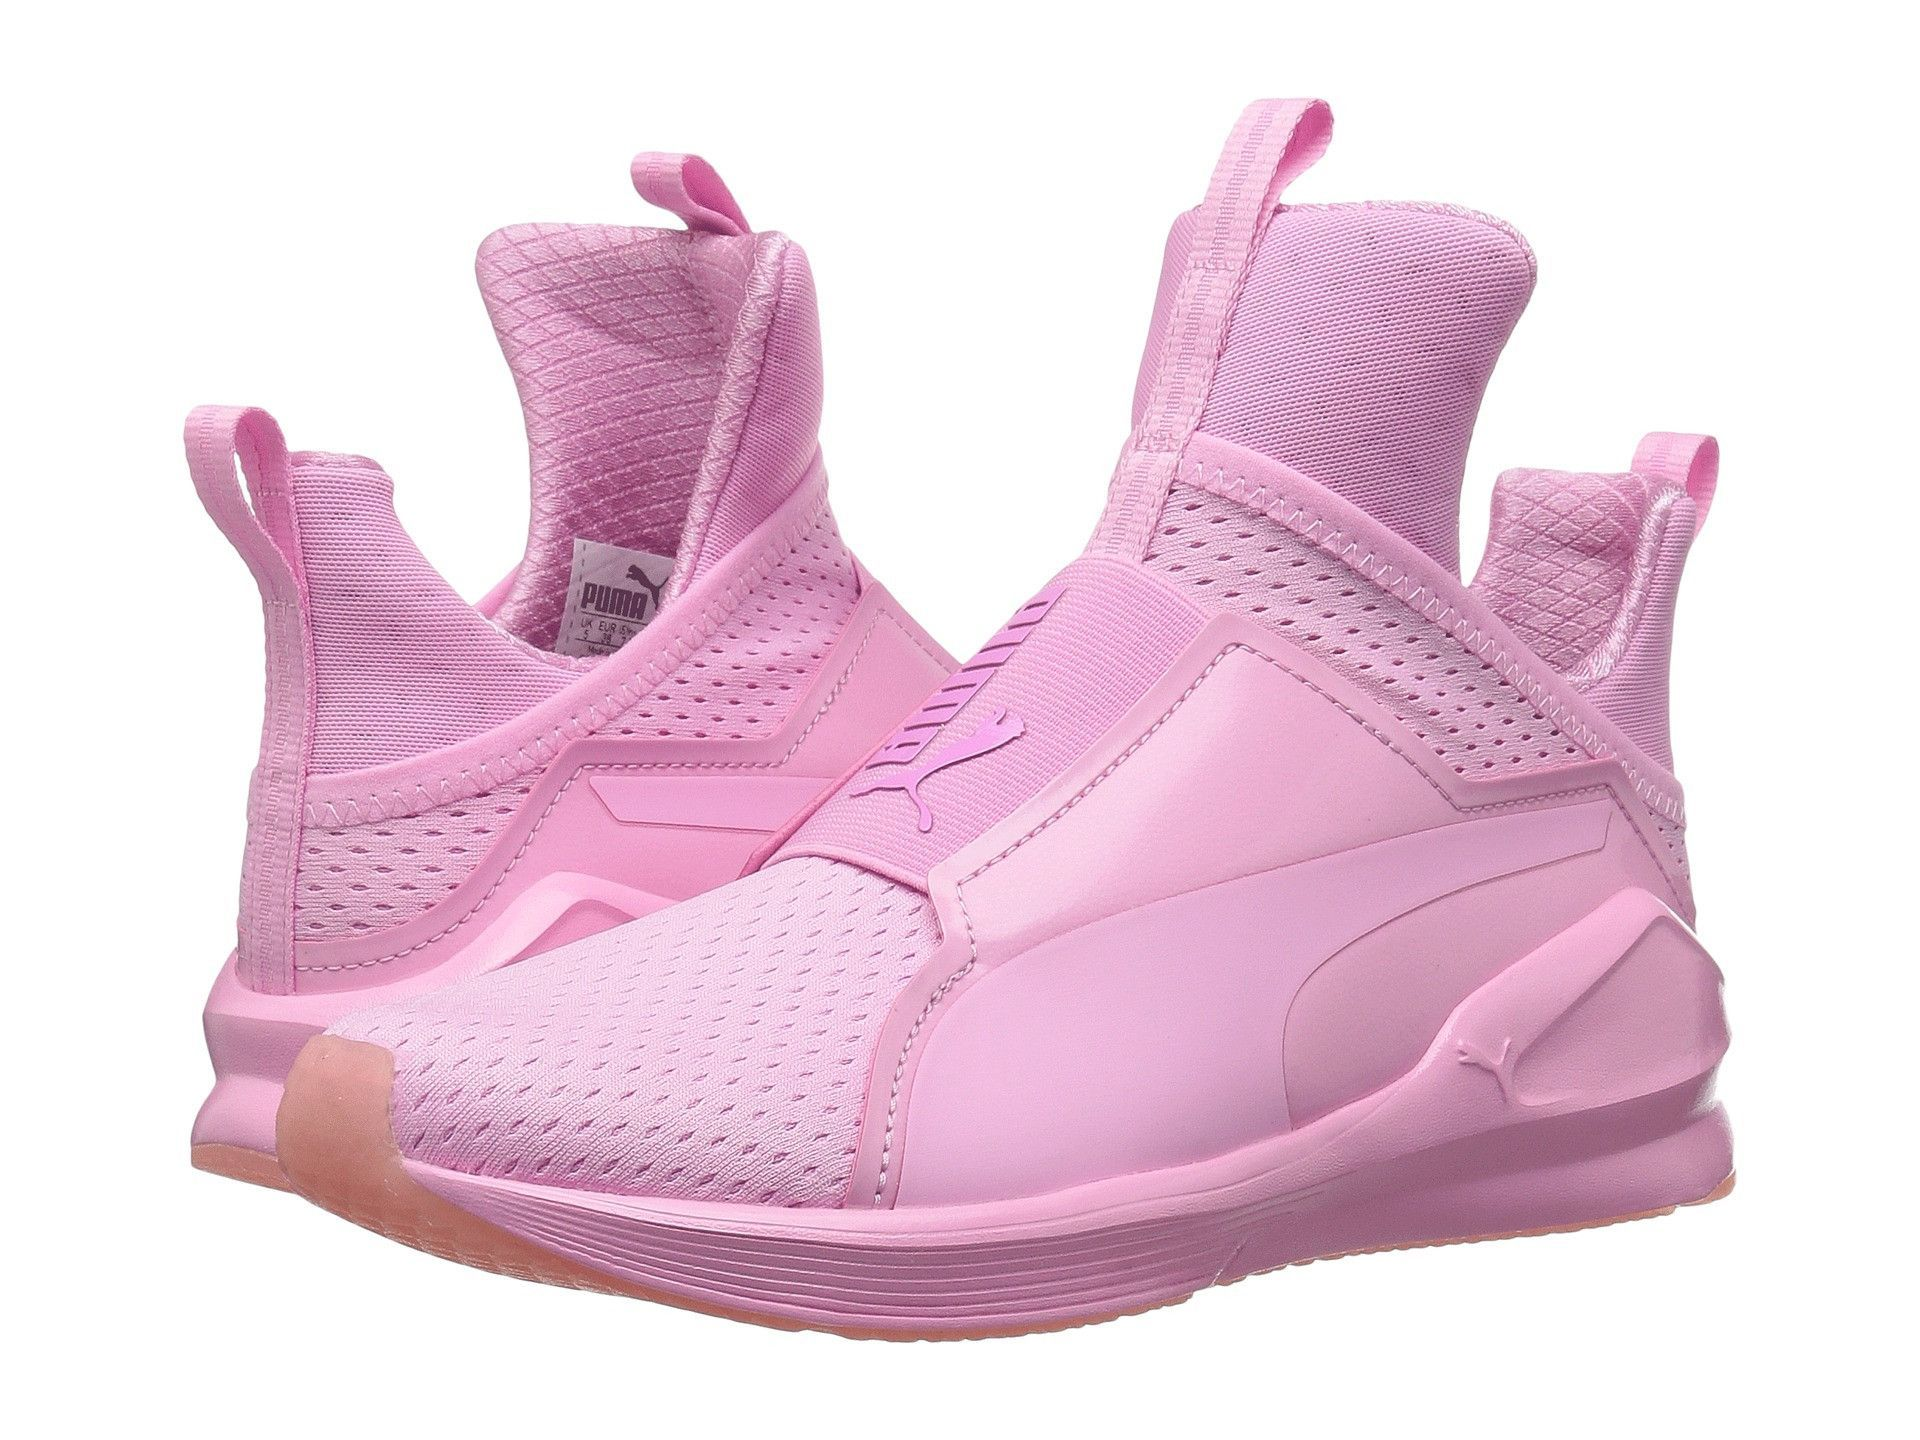 d726cf6ce4 PUMA Fierce Bright Mesh Women | Prism Pink (190304-03) | shoes ...